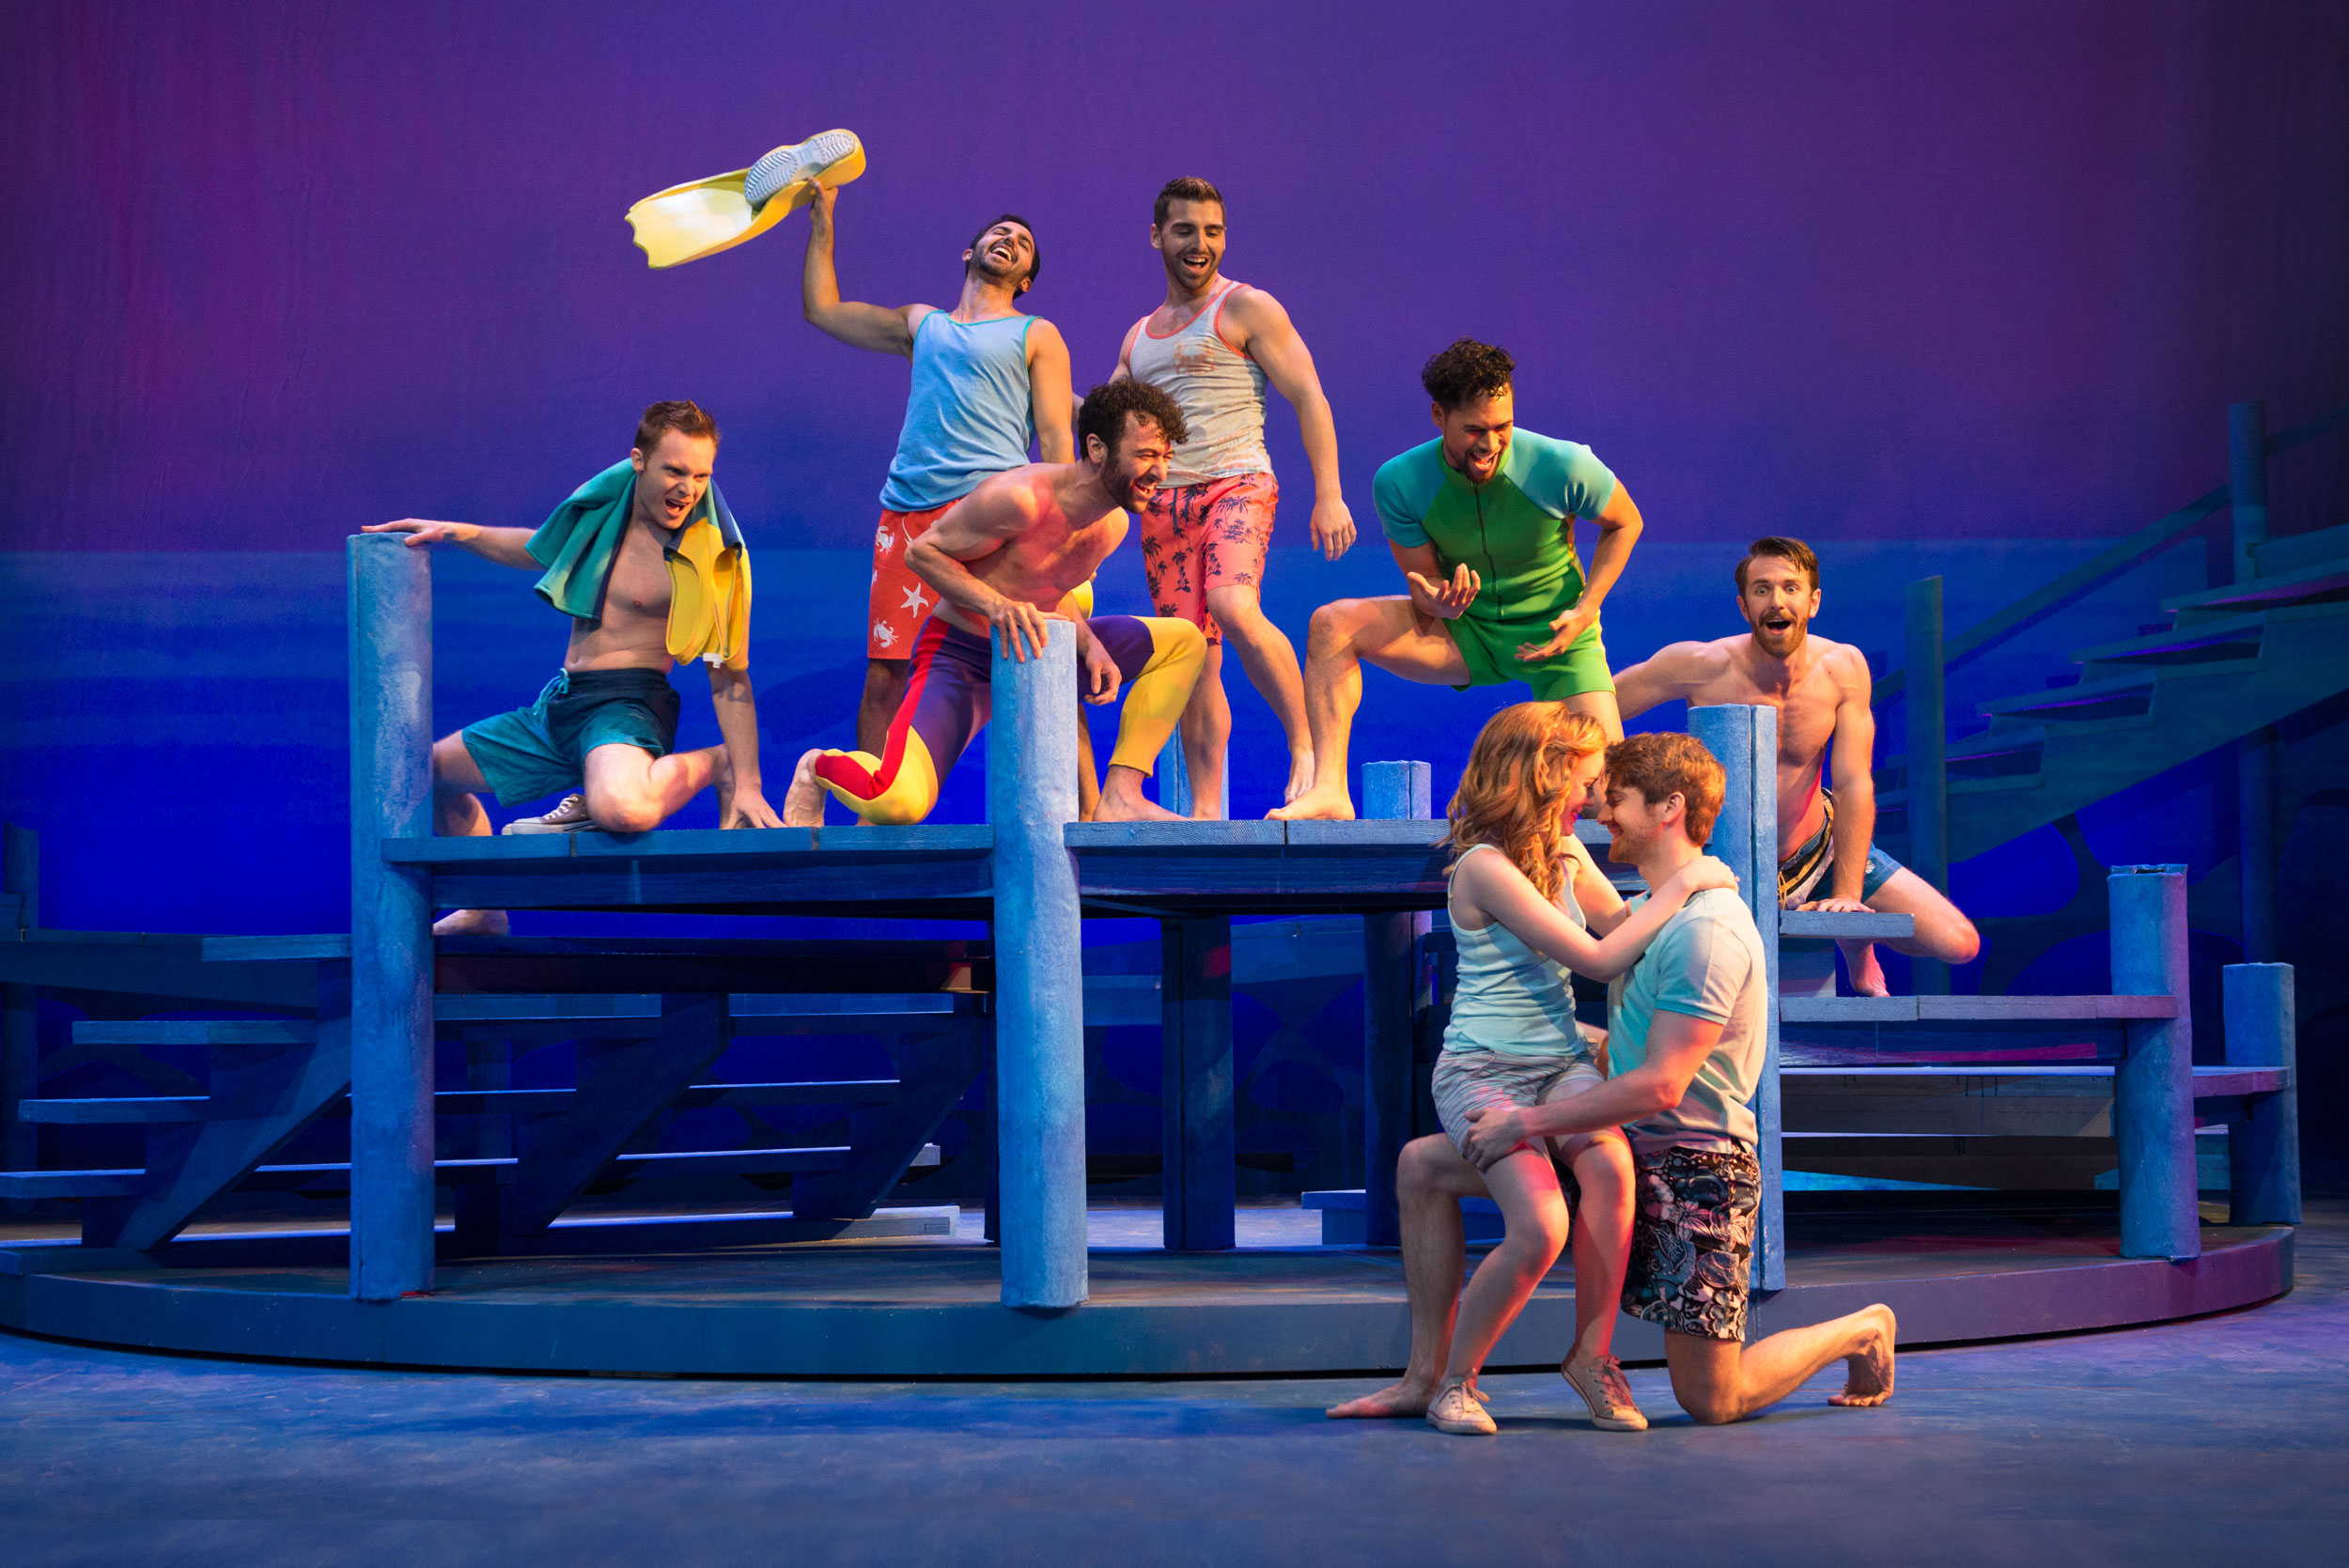 Briana Rapa, Mike Heslin, and cast of Mamma Mia! at the Ogunquit Playhouse - Photo by Gary Ng